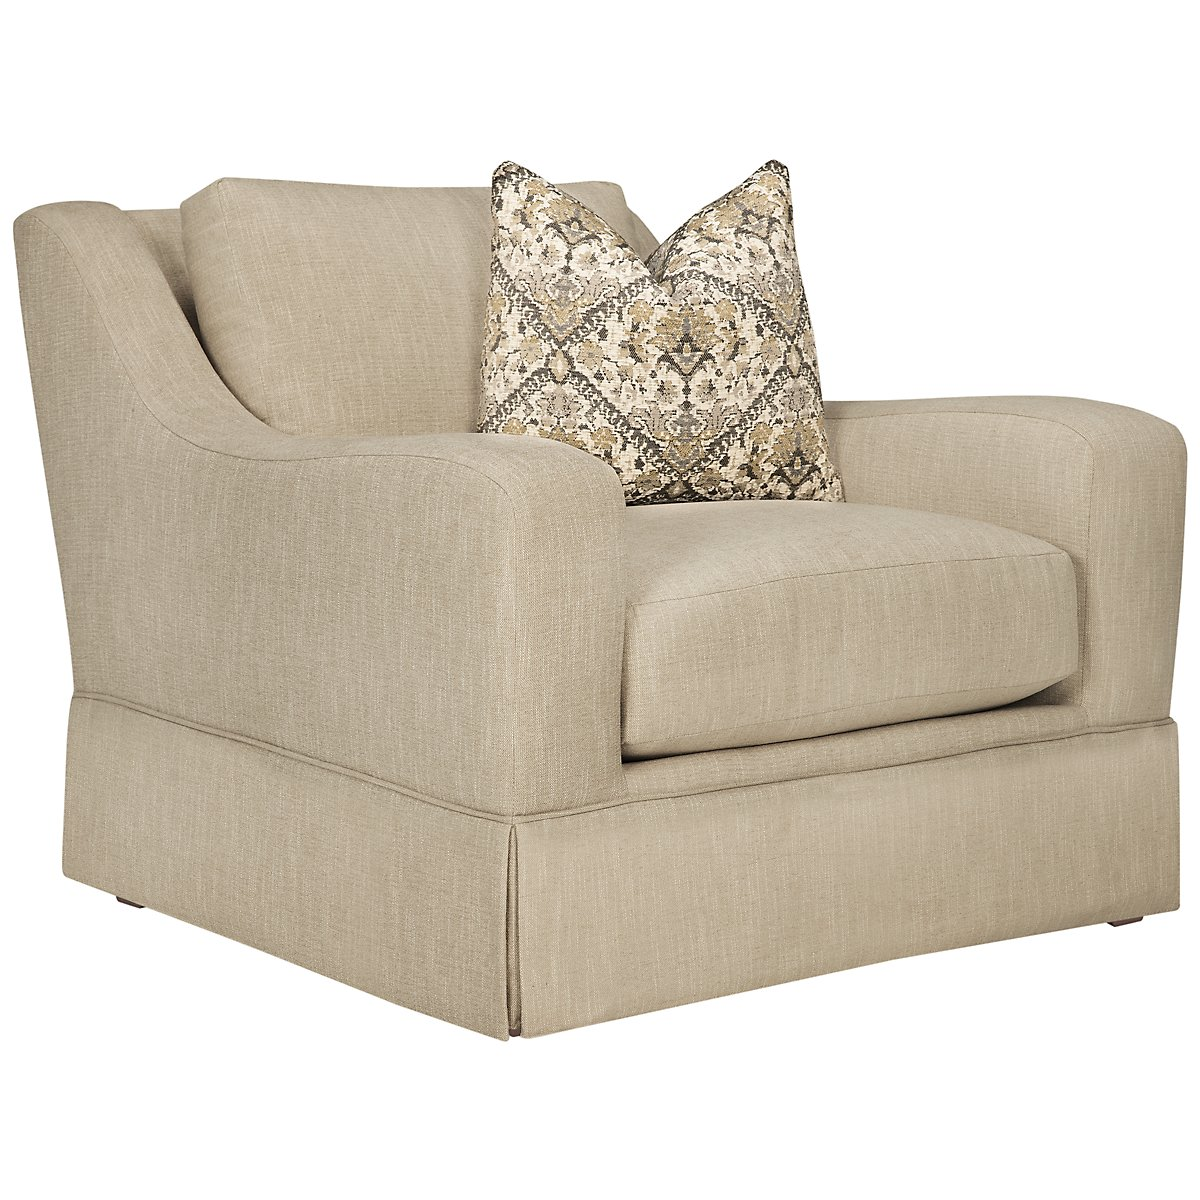 Hallie Beige Fabric Chair